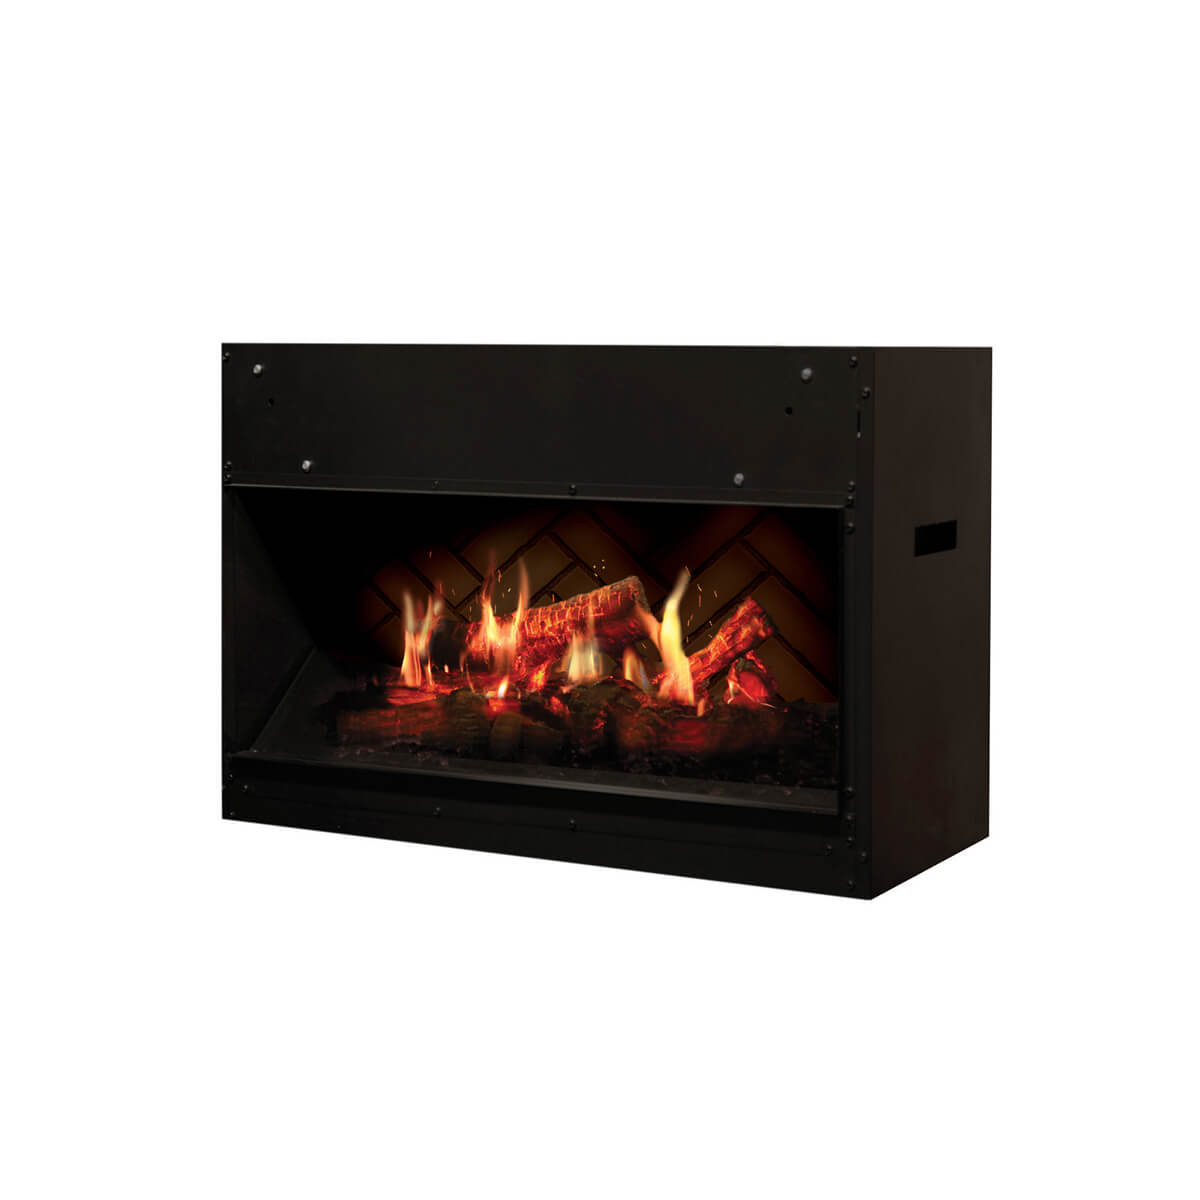 Dimplex Opti-V Solo Electric Fireplace - Crackle Fireplaces